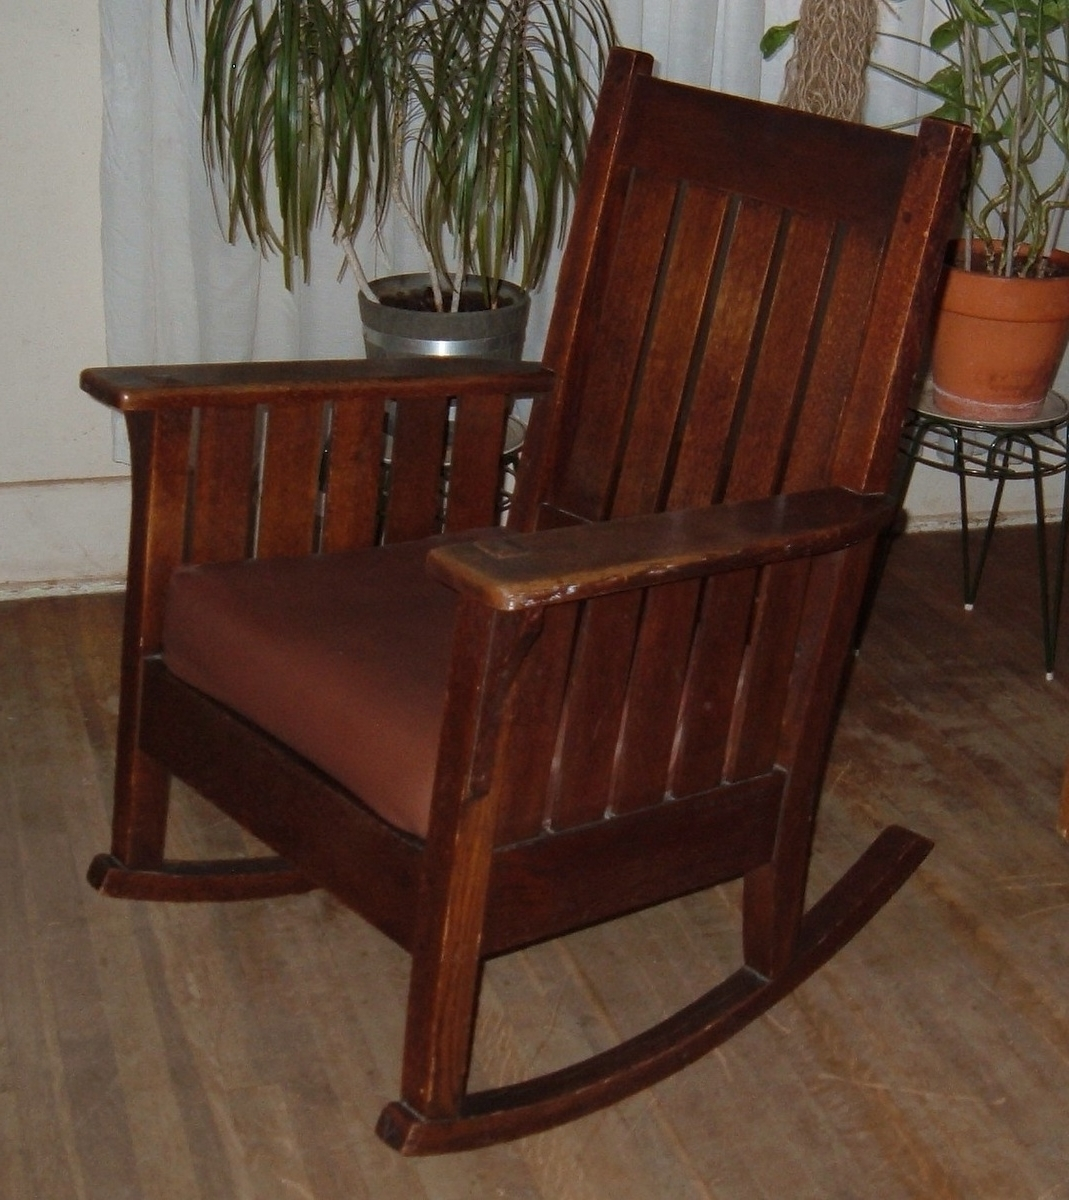 Current Old Fashioned Rocking Chairs Intended For Mission Rocking Chair Collectors Weekly Antique Chairs 1800S M2Jk (View 13 of 15)